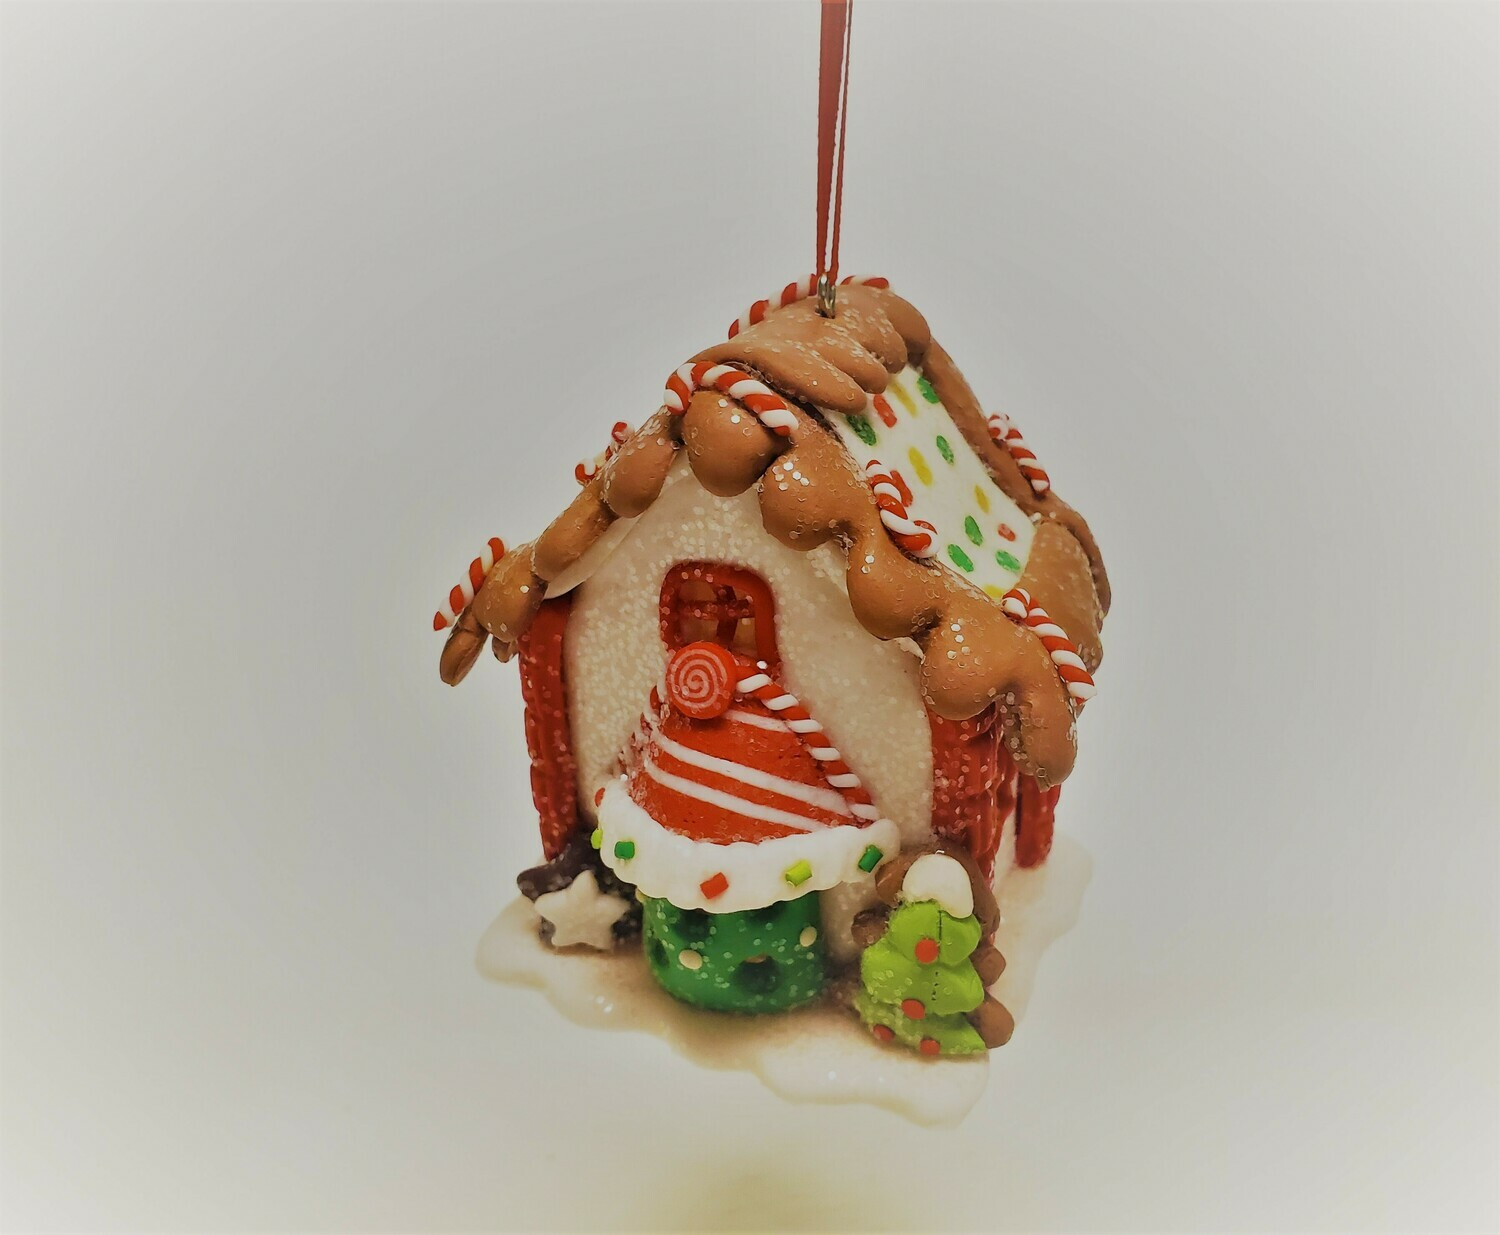 White Gingerbread House with Chocolate Icing